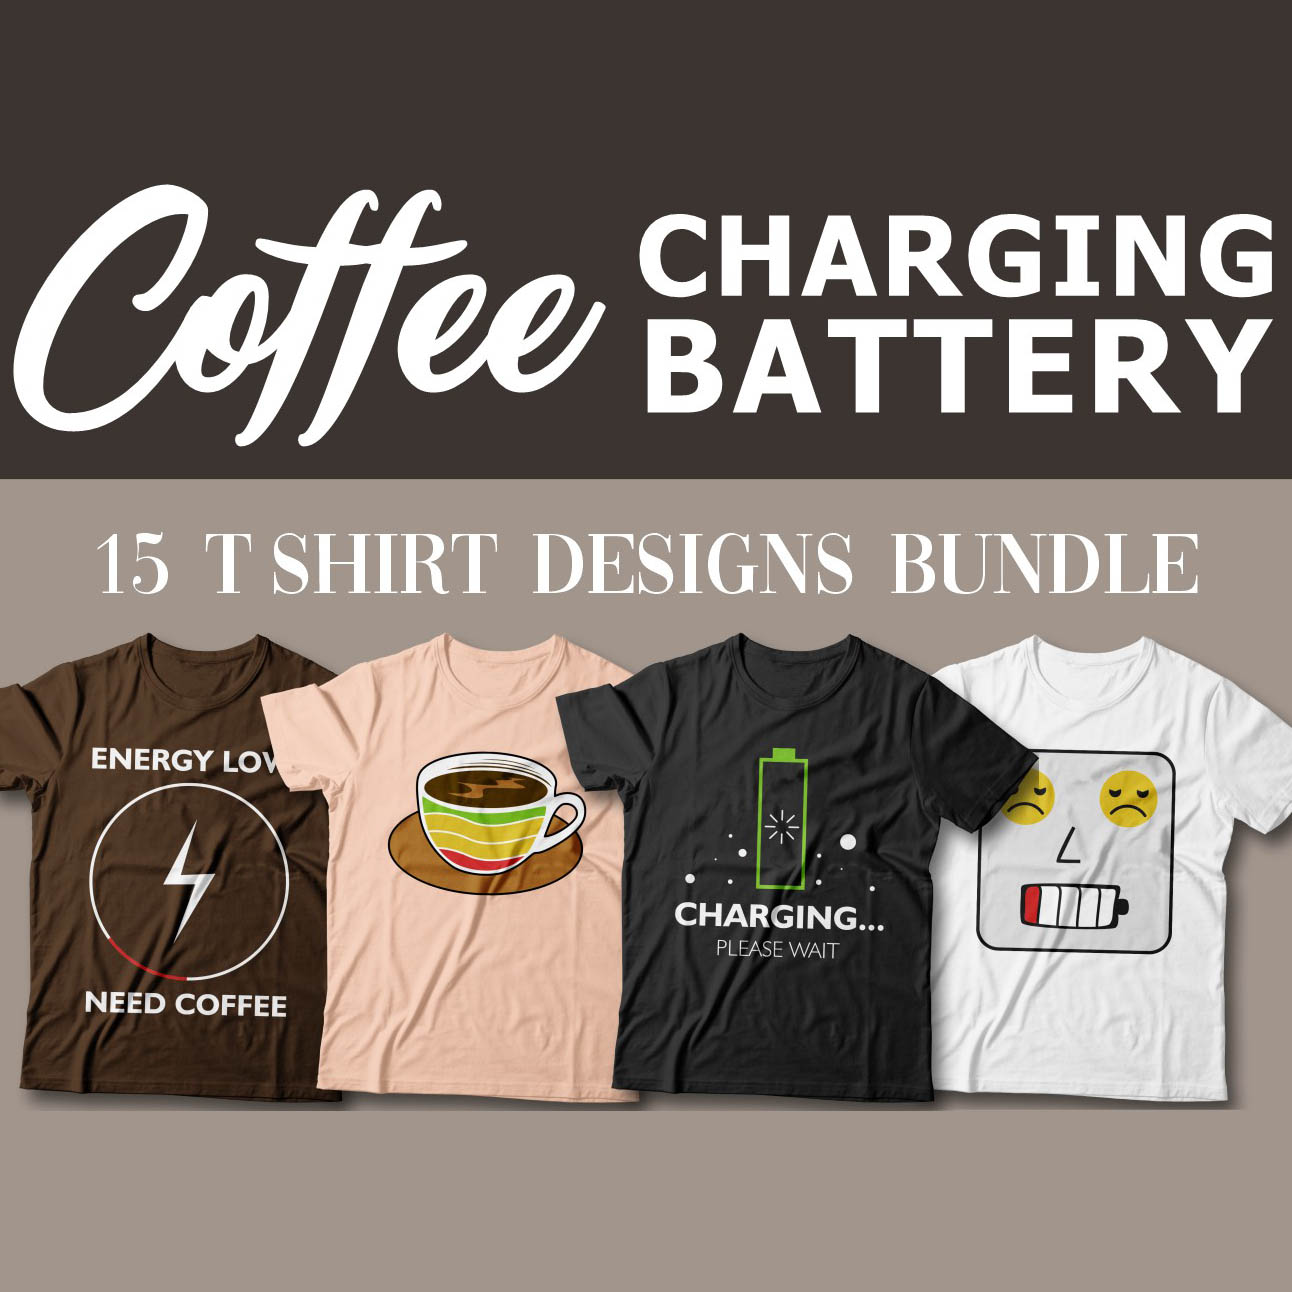 15 Coffee Charge T-Shirt Designs cover image.